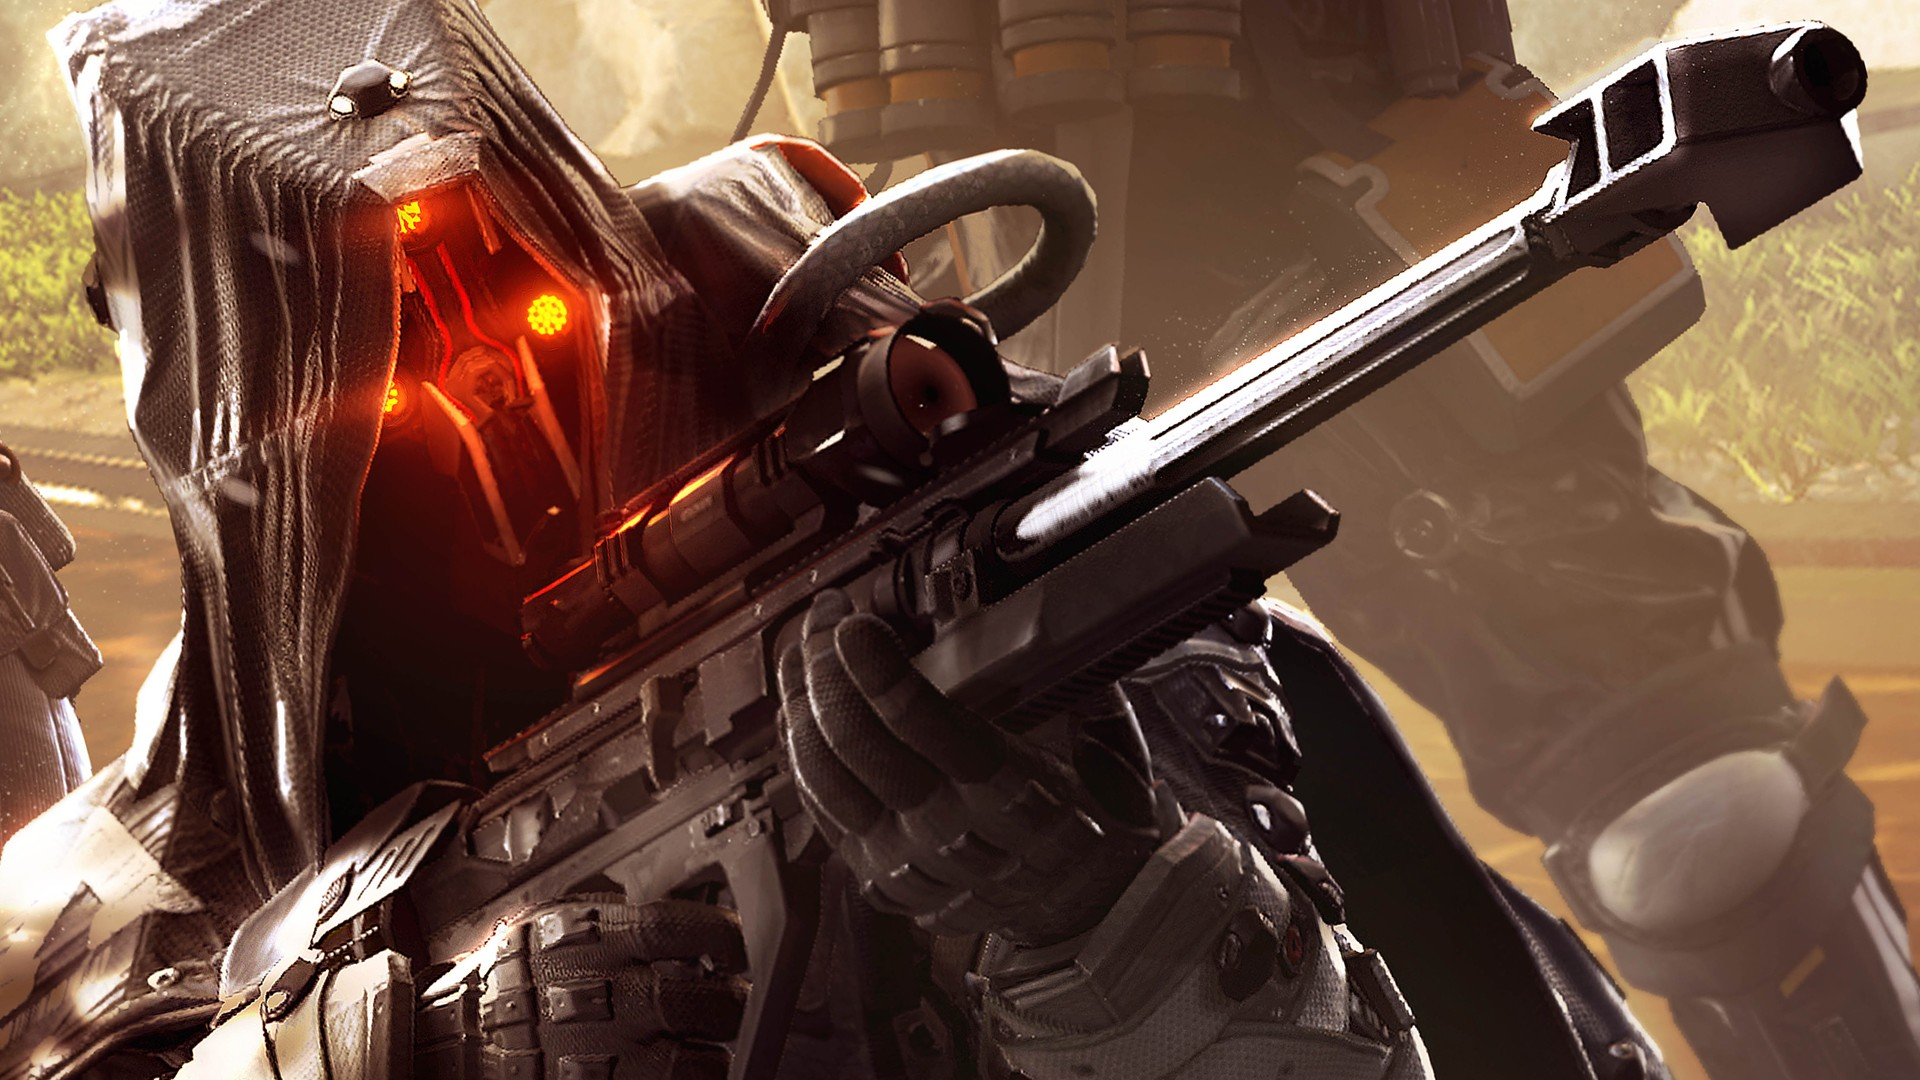 Free Killzone Wallpaper